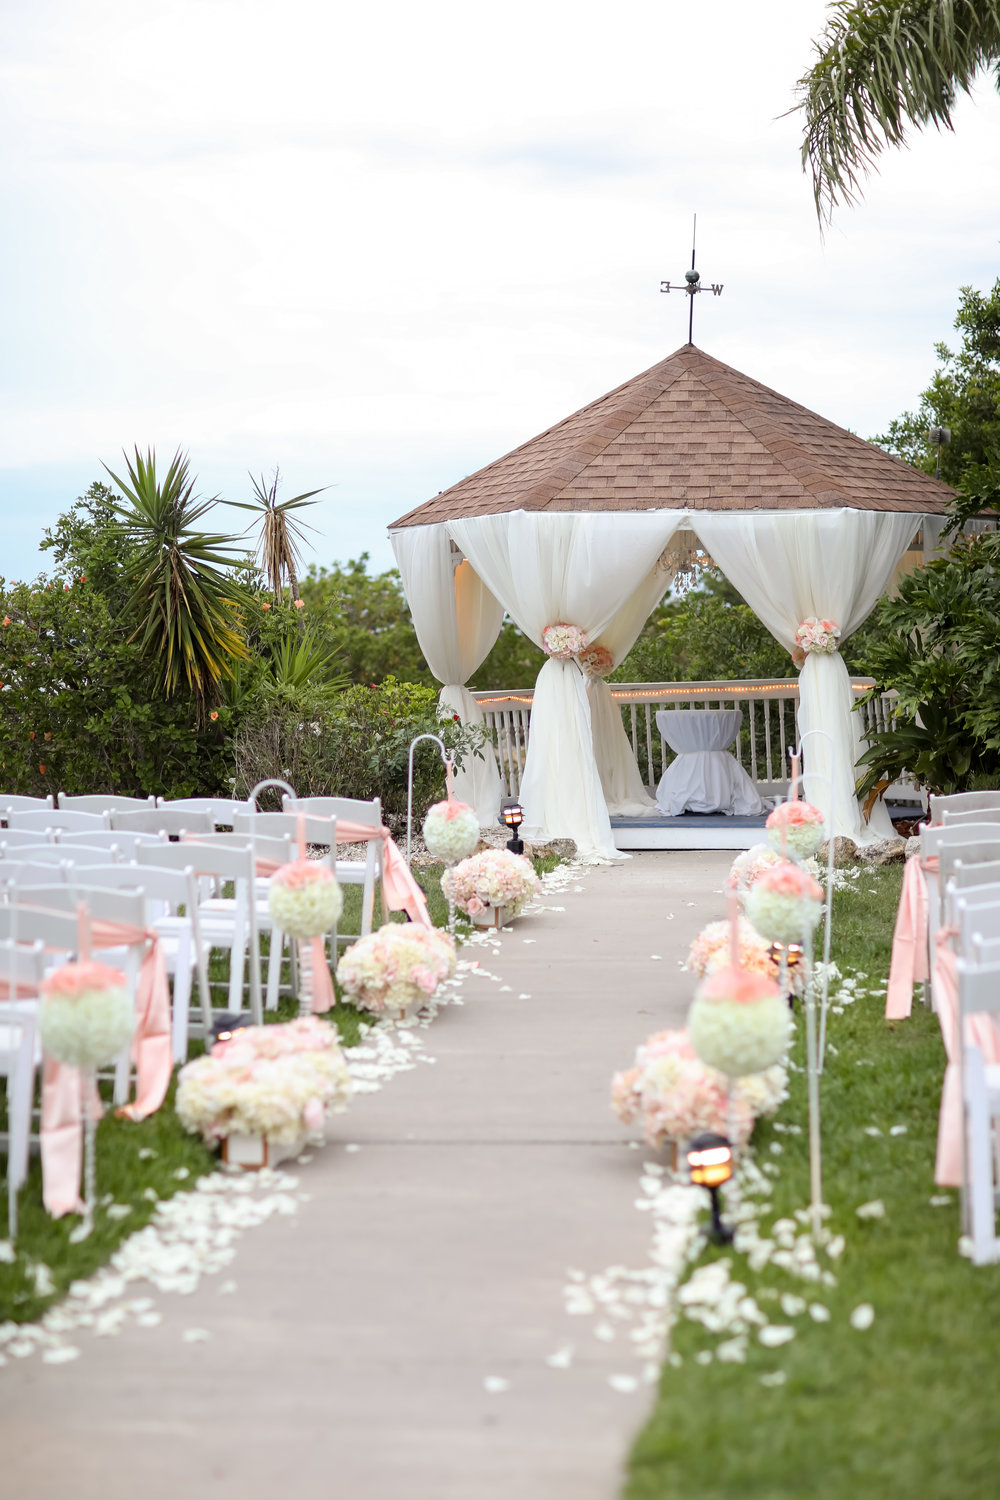 An intimate ceremony space overlooking the water featured pomander balls dripping with crystals, and a gazebo chandelier.